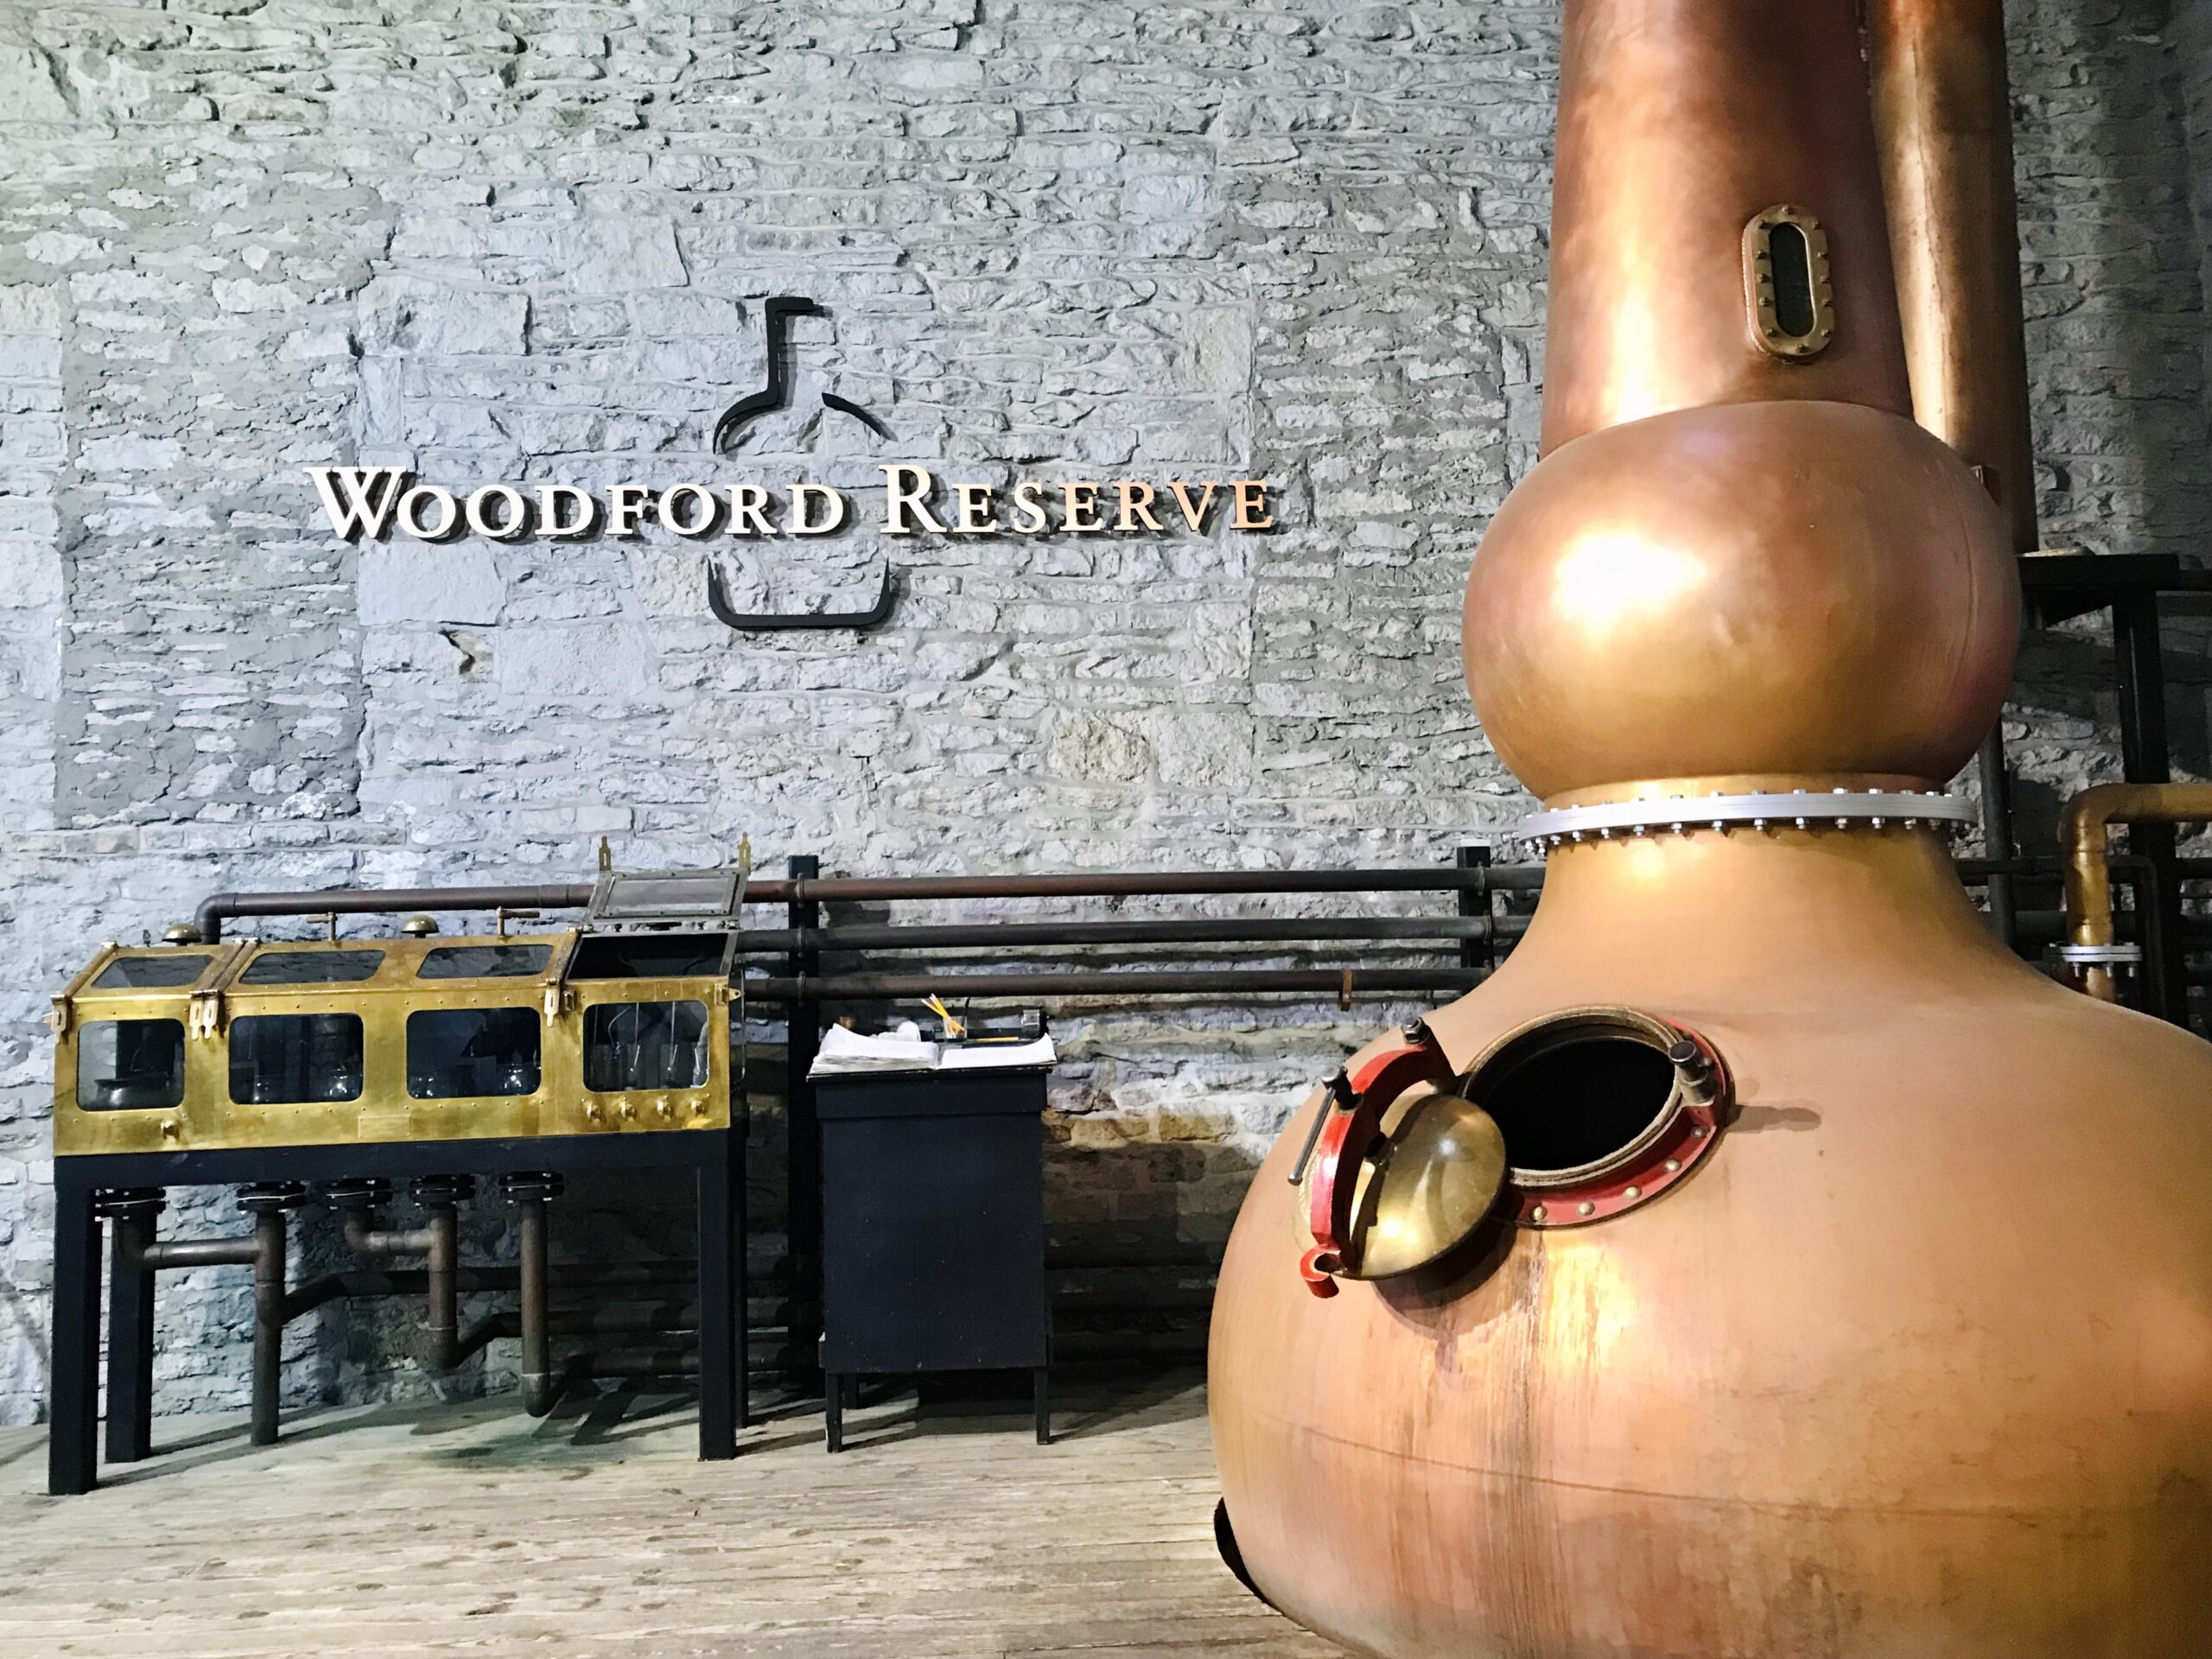 Copper still at Woodford Reserve Distillery